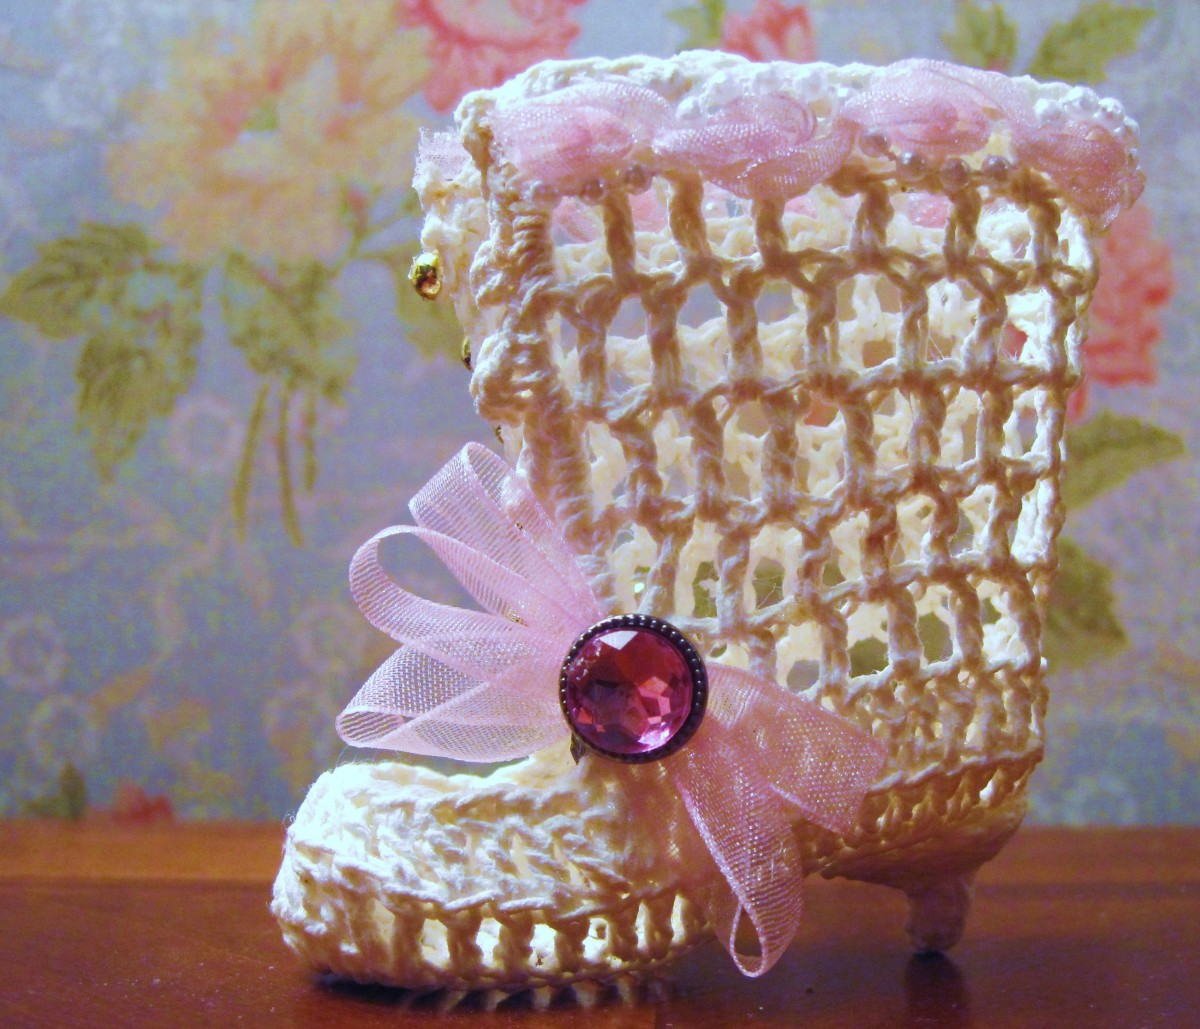 Vintage Style Victorian Crochet Lace Up Boot- Level of Difficulty: Intermediate